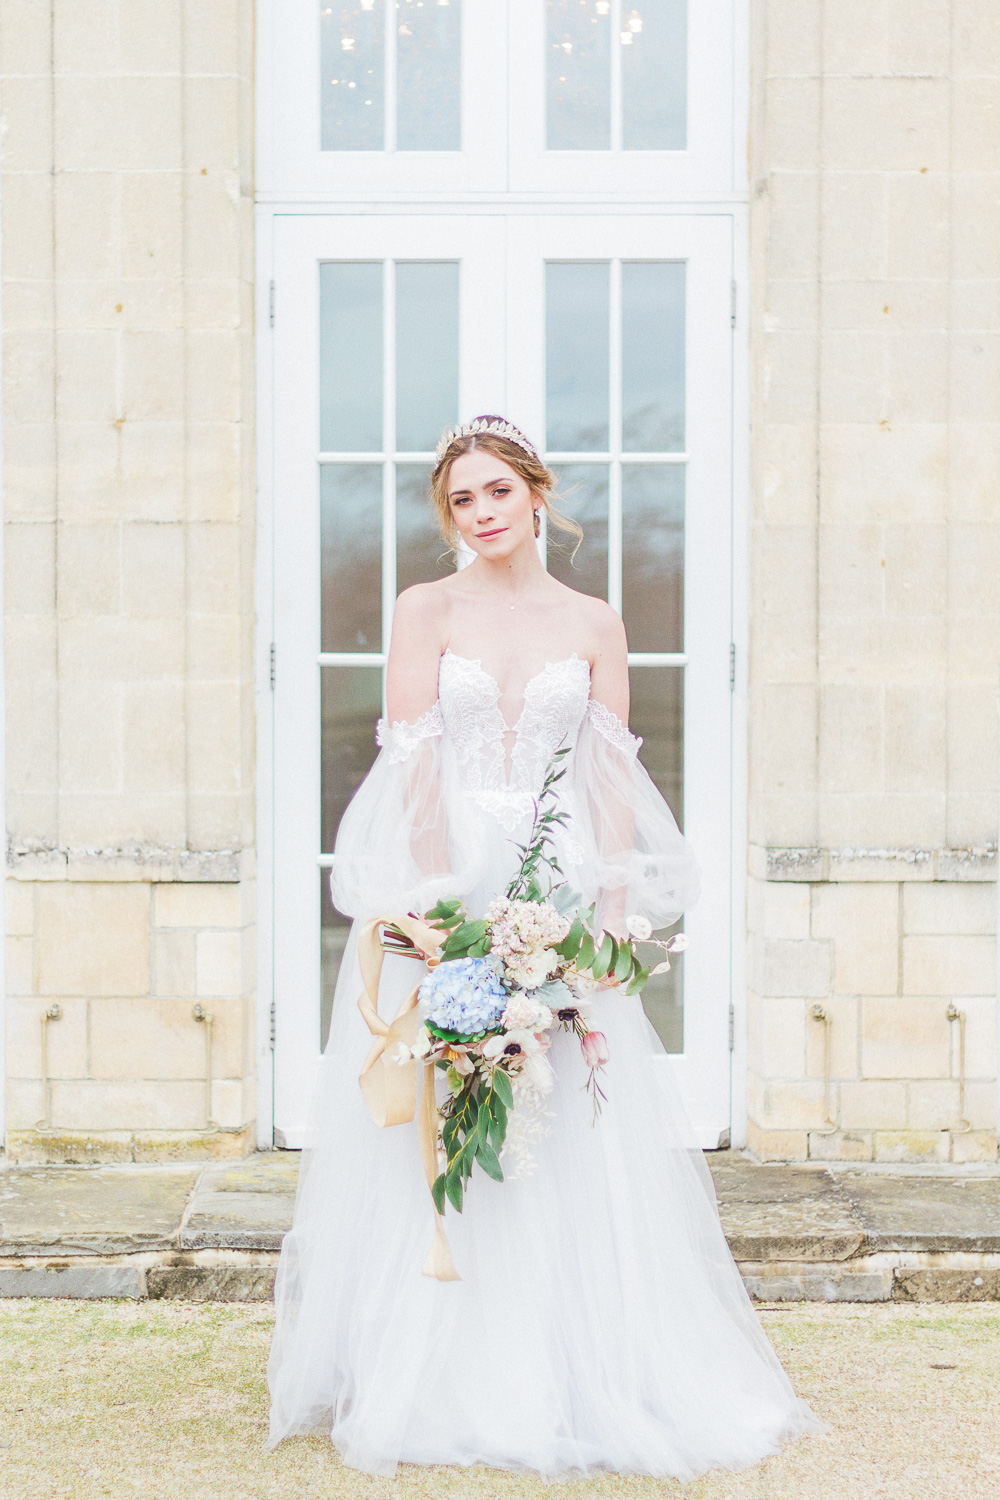 Bride with a spring bouquet at Froyle Park wedding venue in the UK